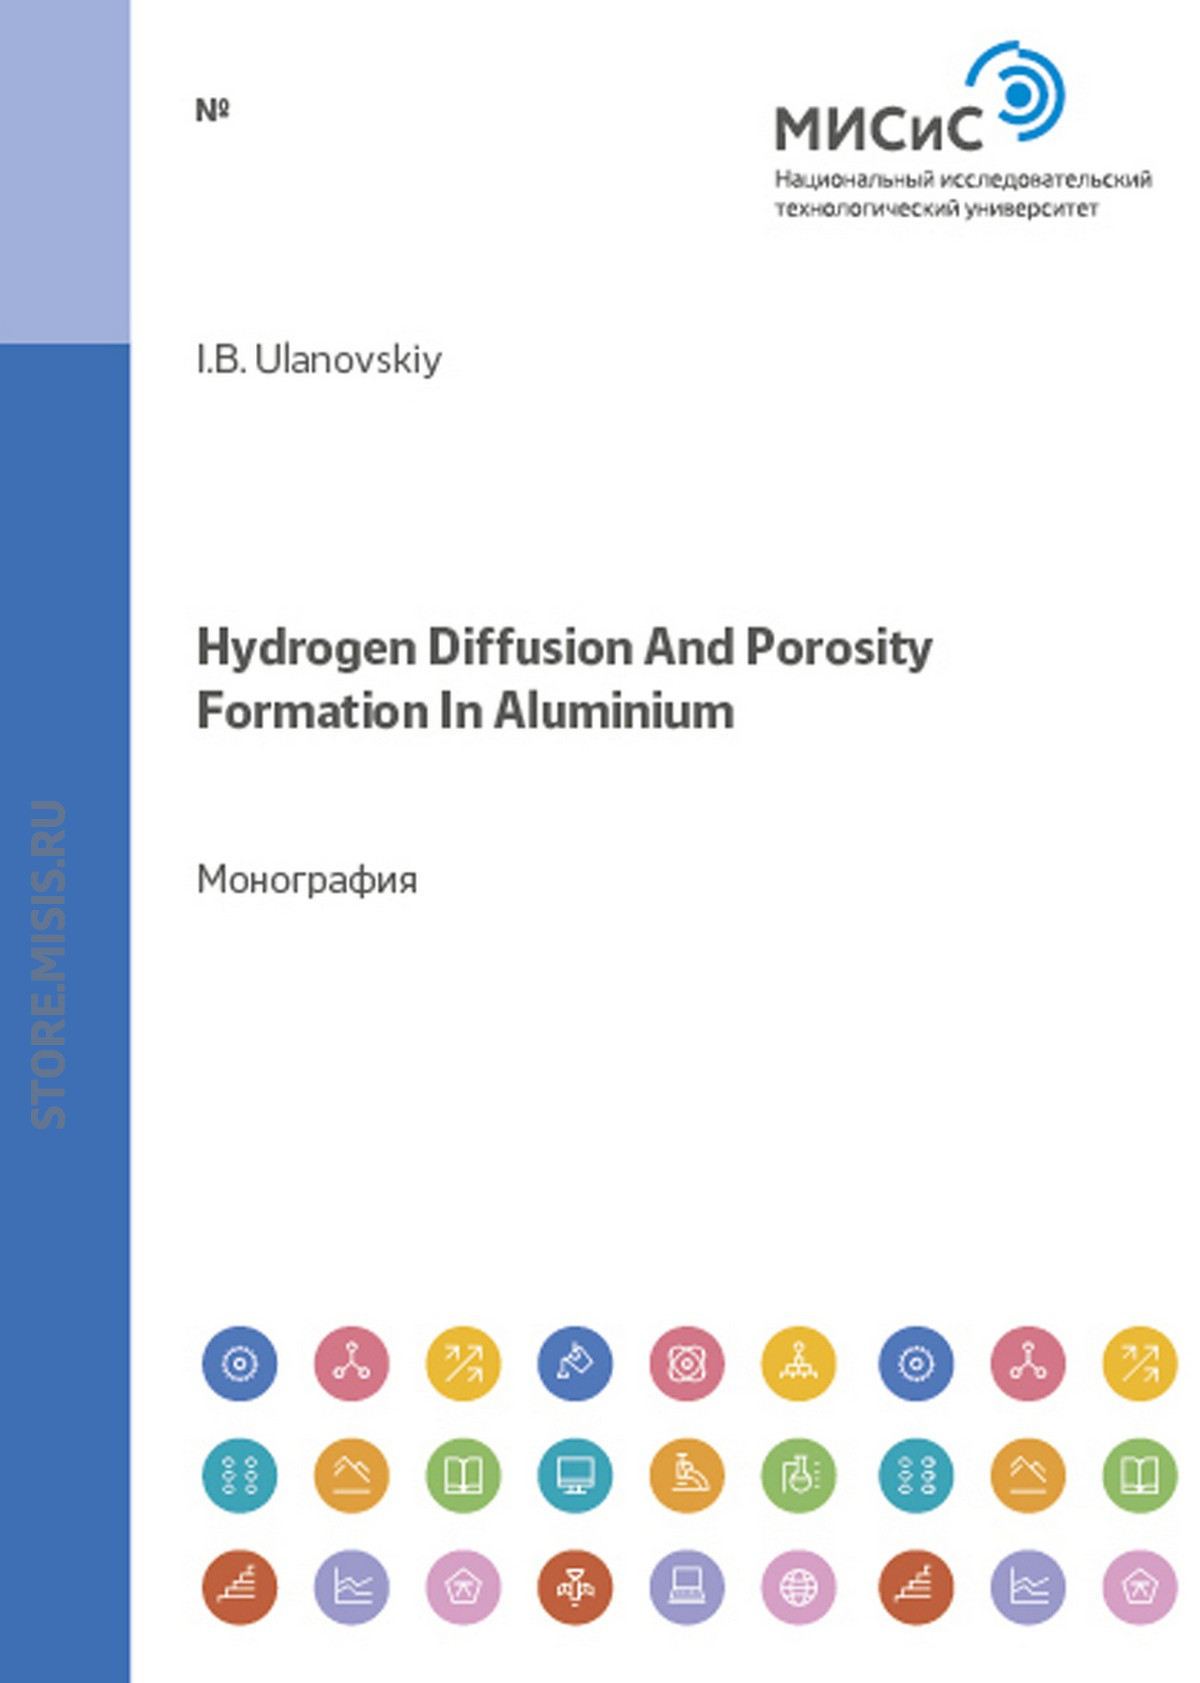 Ulanovskiy I. B. Hydrogen Diffusion and Porosity Formation In Aluminium umbra диспенсер для жидкого мыла umbra step 385 мл черный xhalt 1k